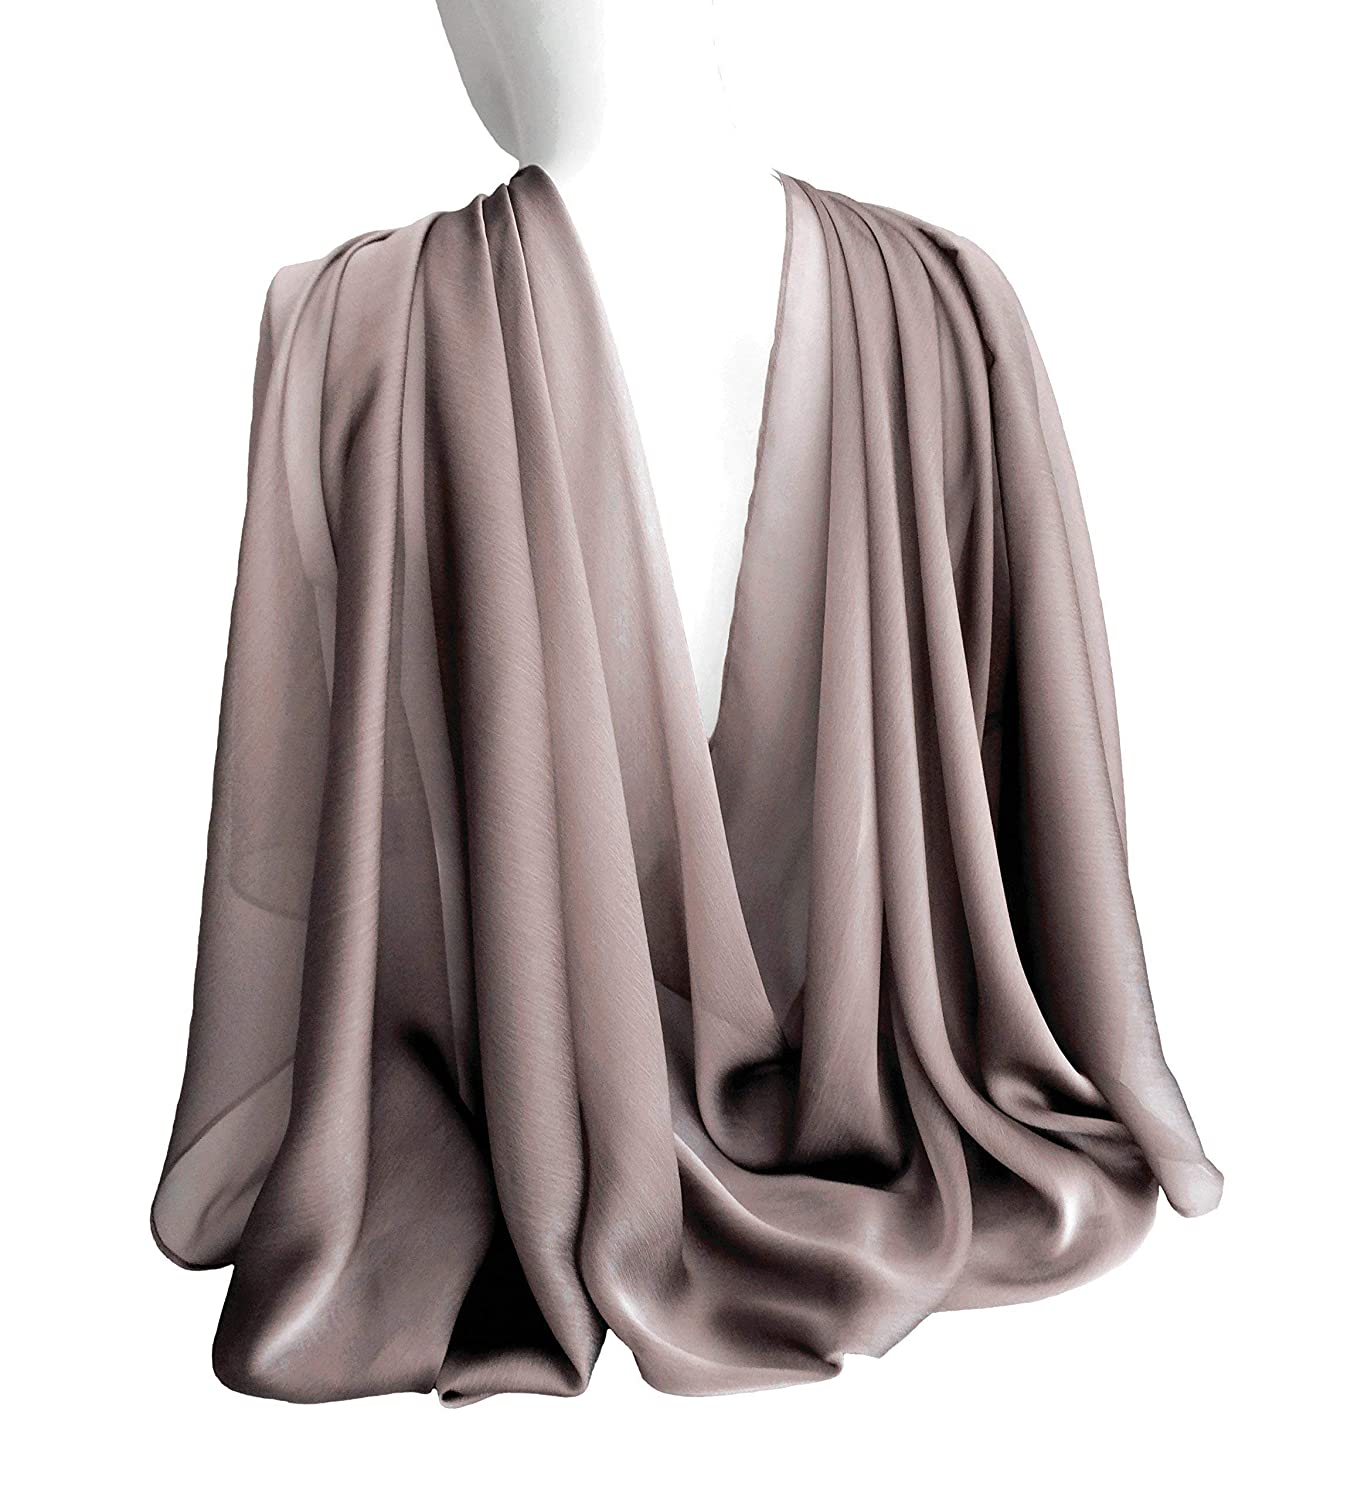 Light Silvery Brown Wide Long Shiny Scarf for Women Evening Wrap With Gift Box Formal Shawl Lightweight Cocktail Chiffon Stoles Christmas Mother's day 77